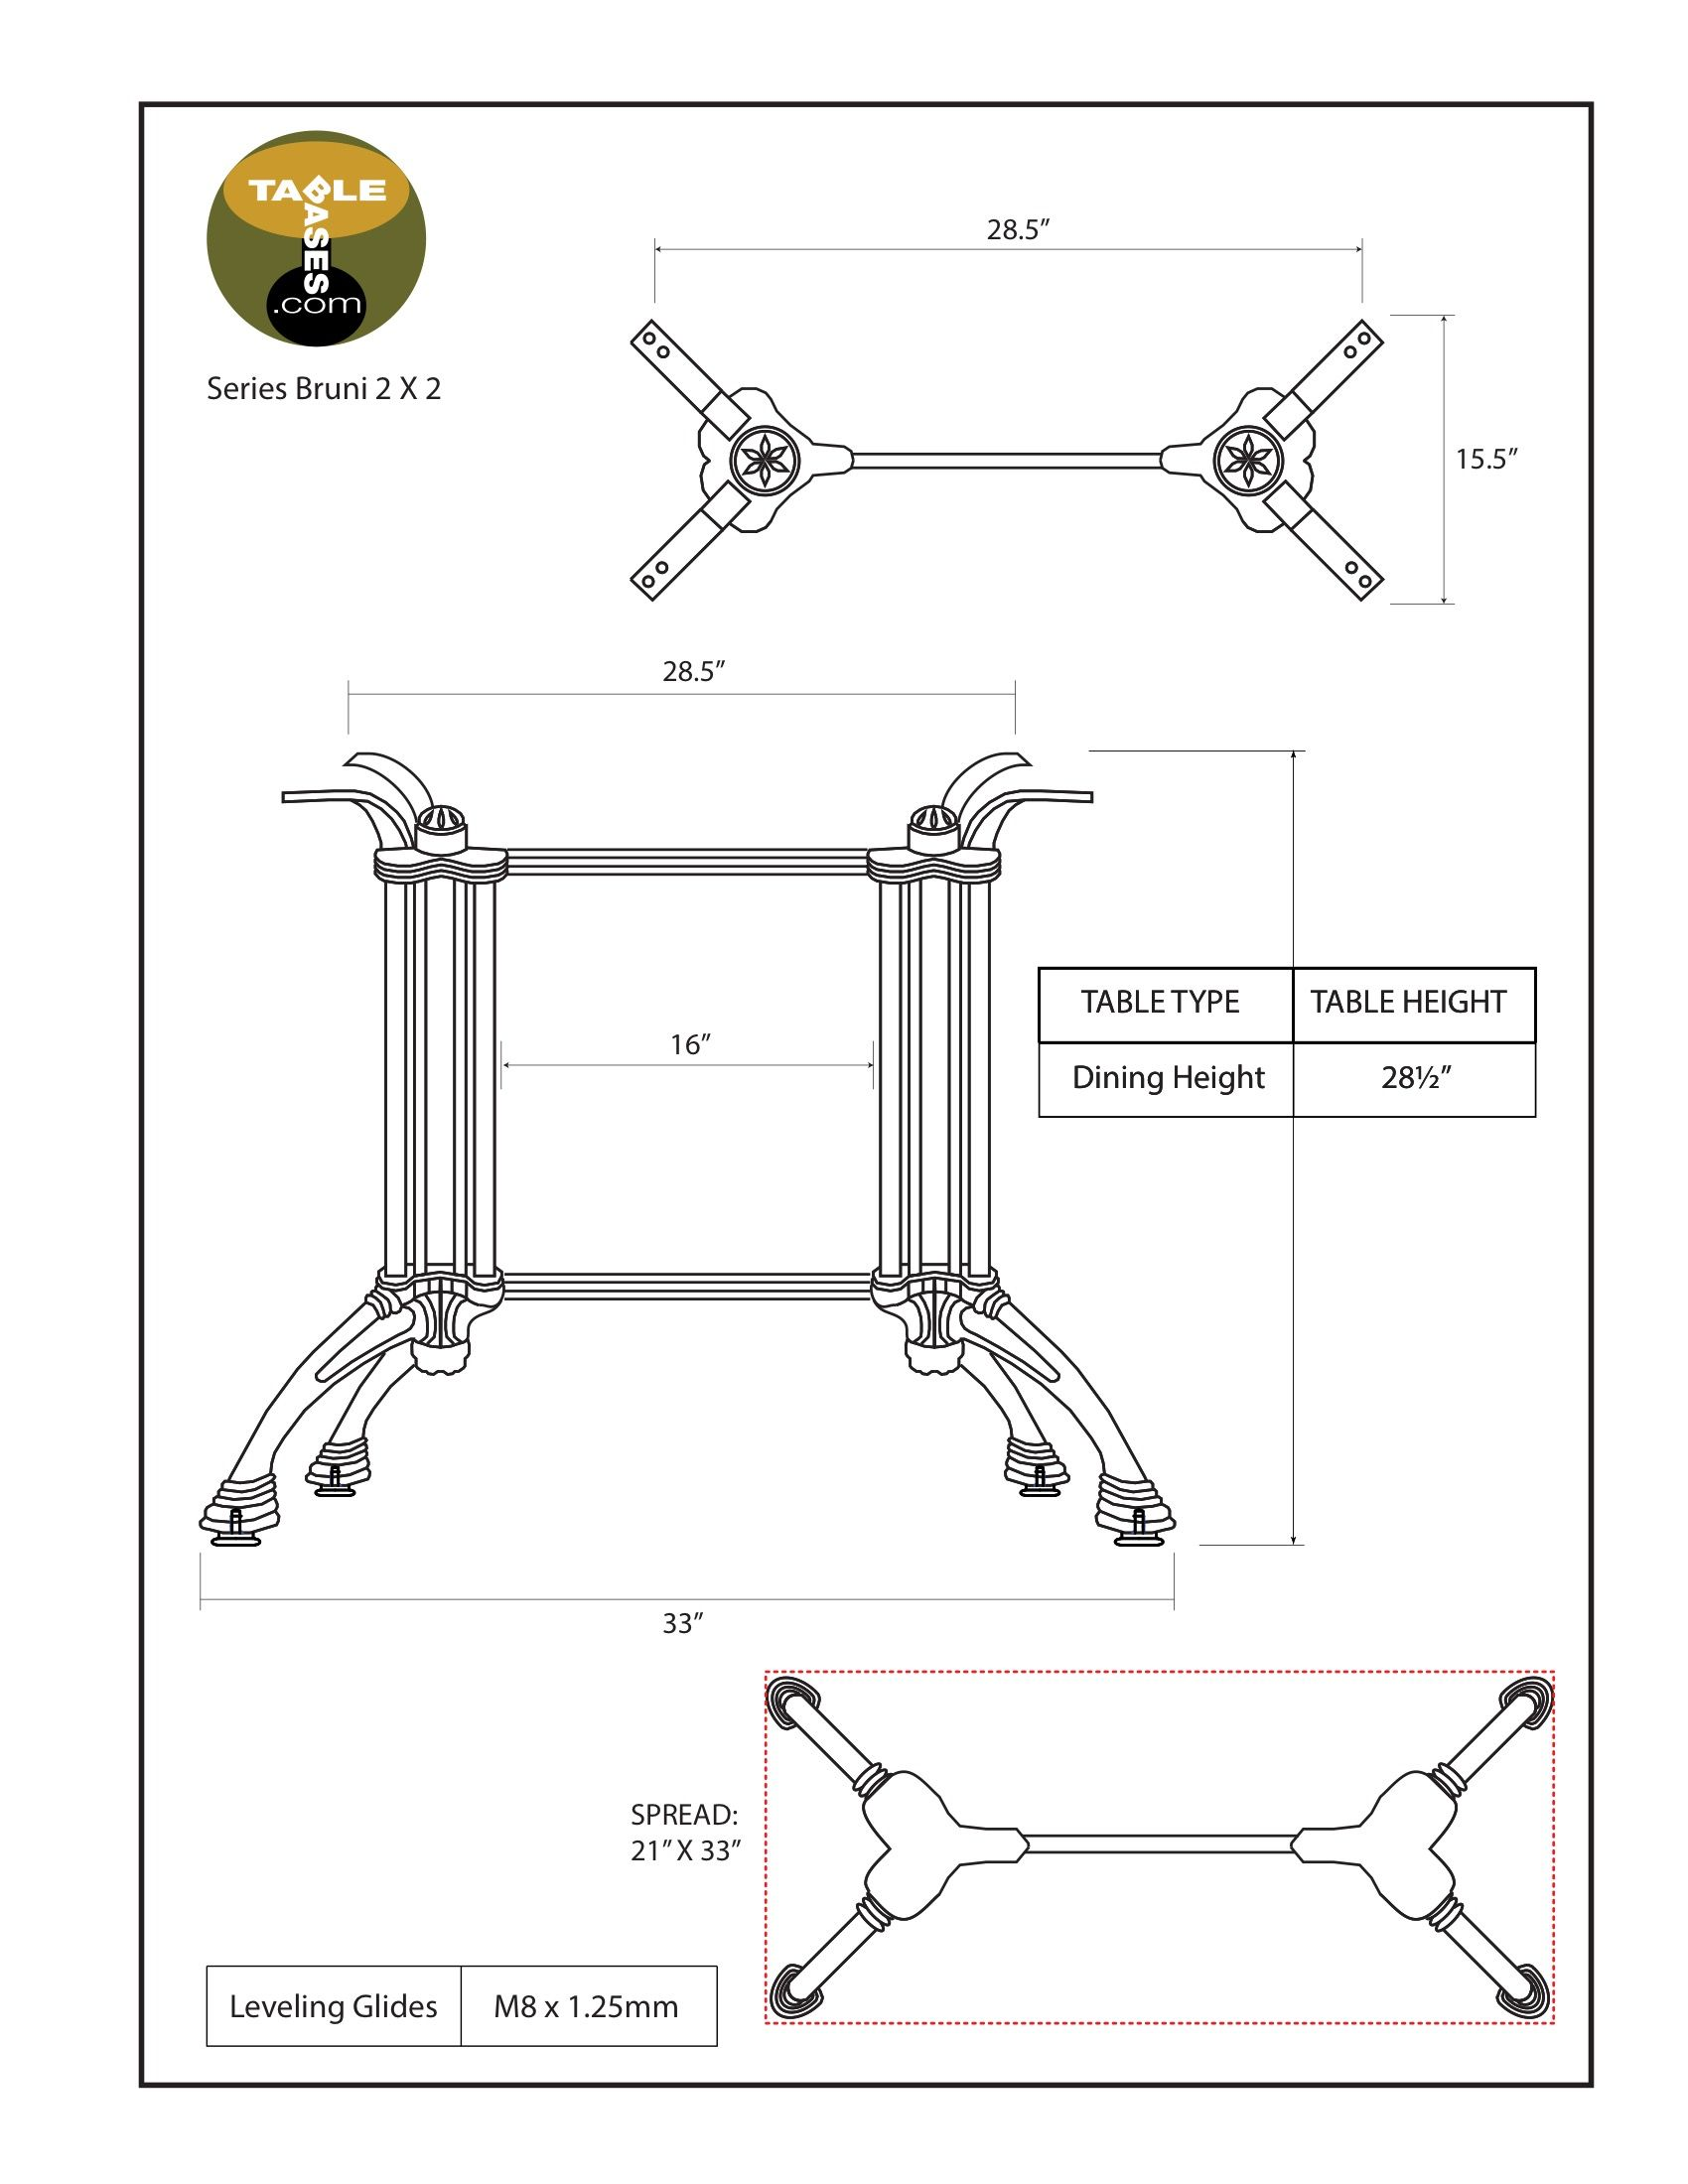 Bruni 2 x 2 Table Base Specifications